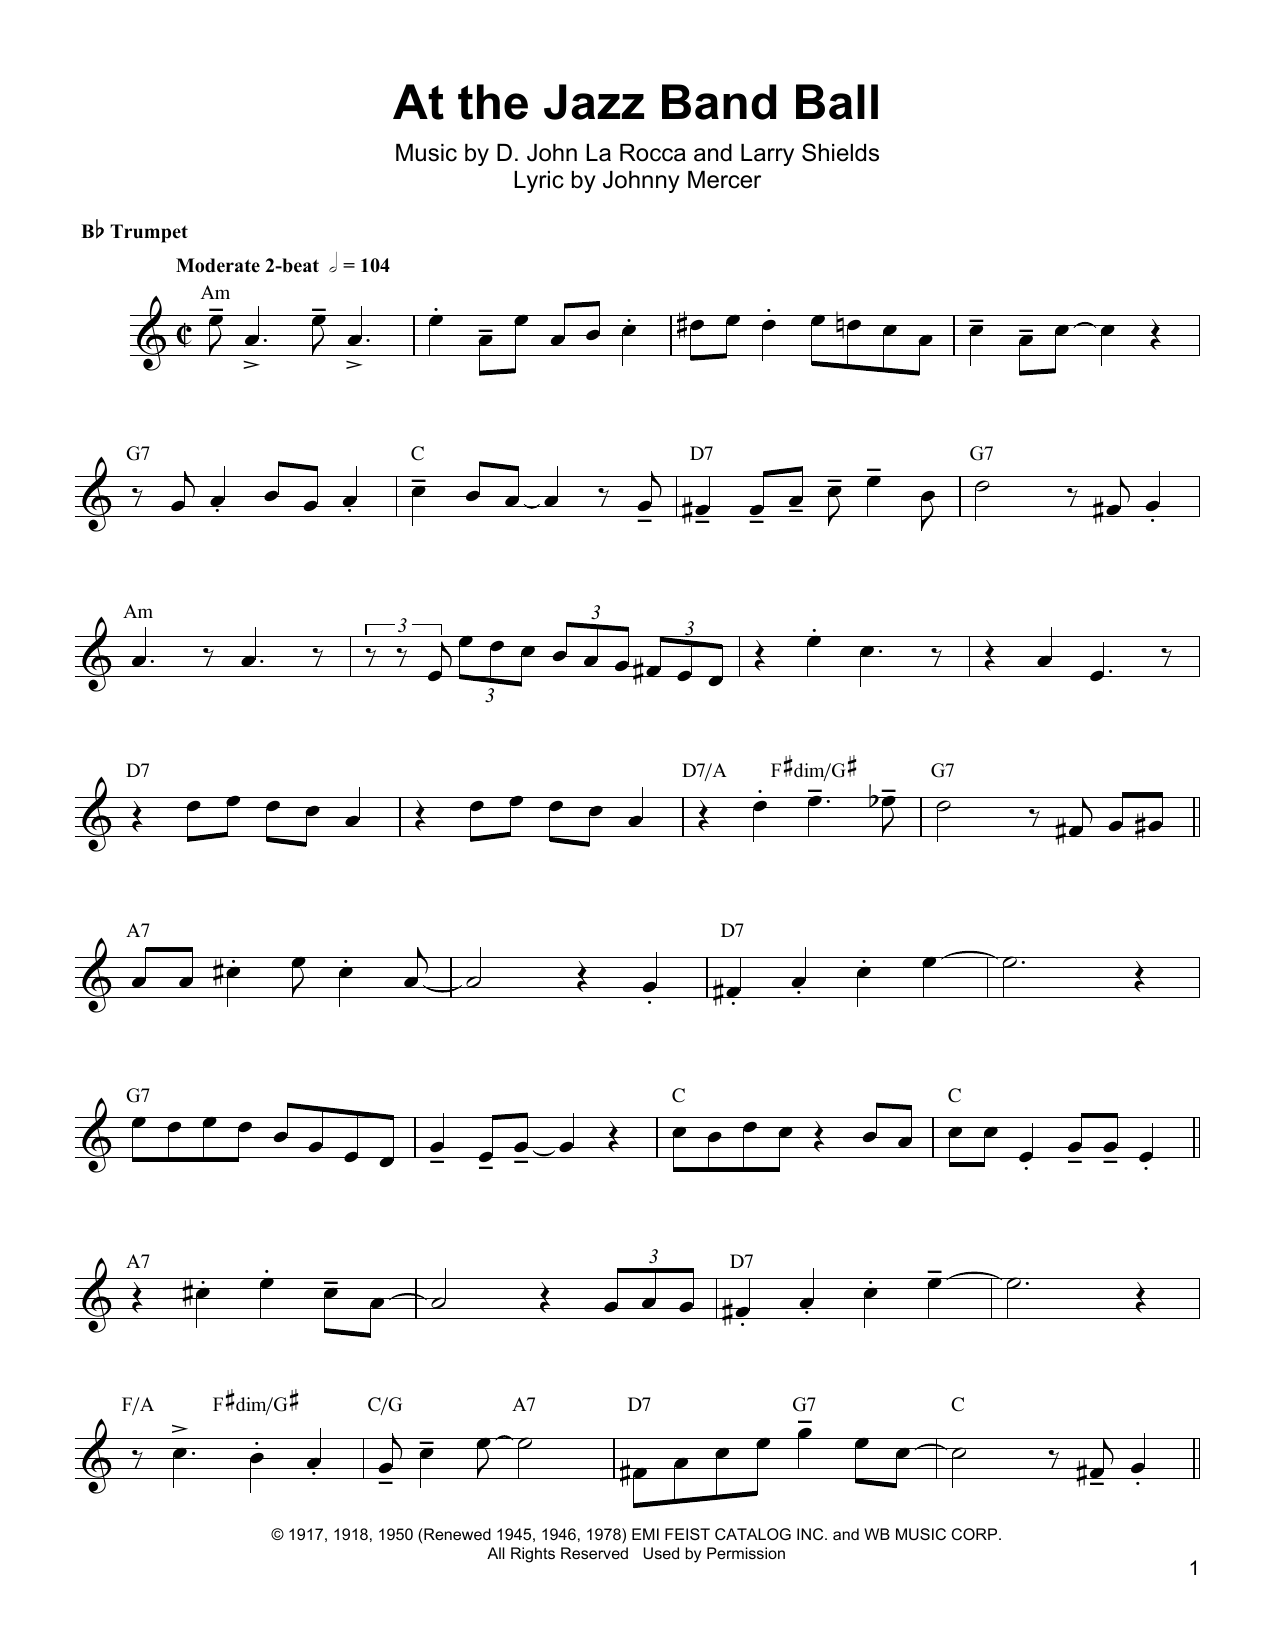 Download Arturo Sandoval 'At The Jazz Band Ball' Digital Sheet Music Notes & Chords and start playing in minutes